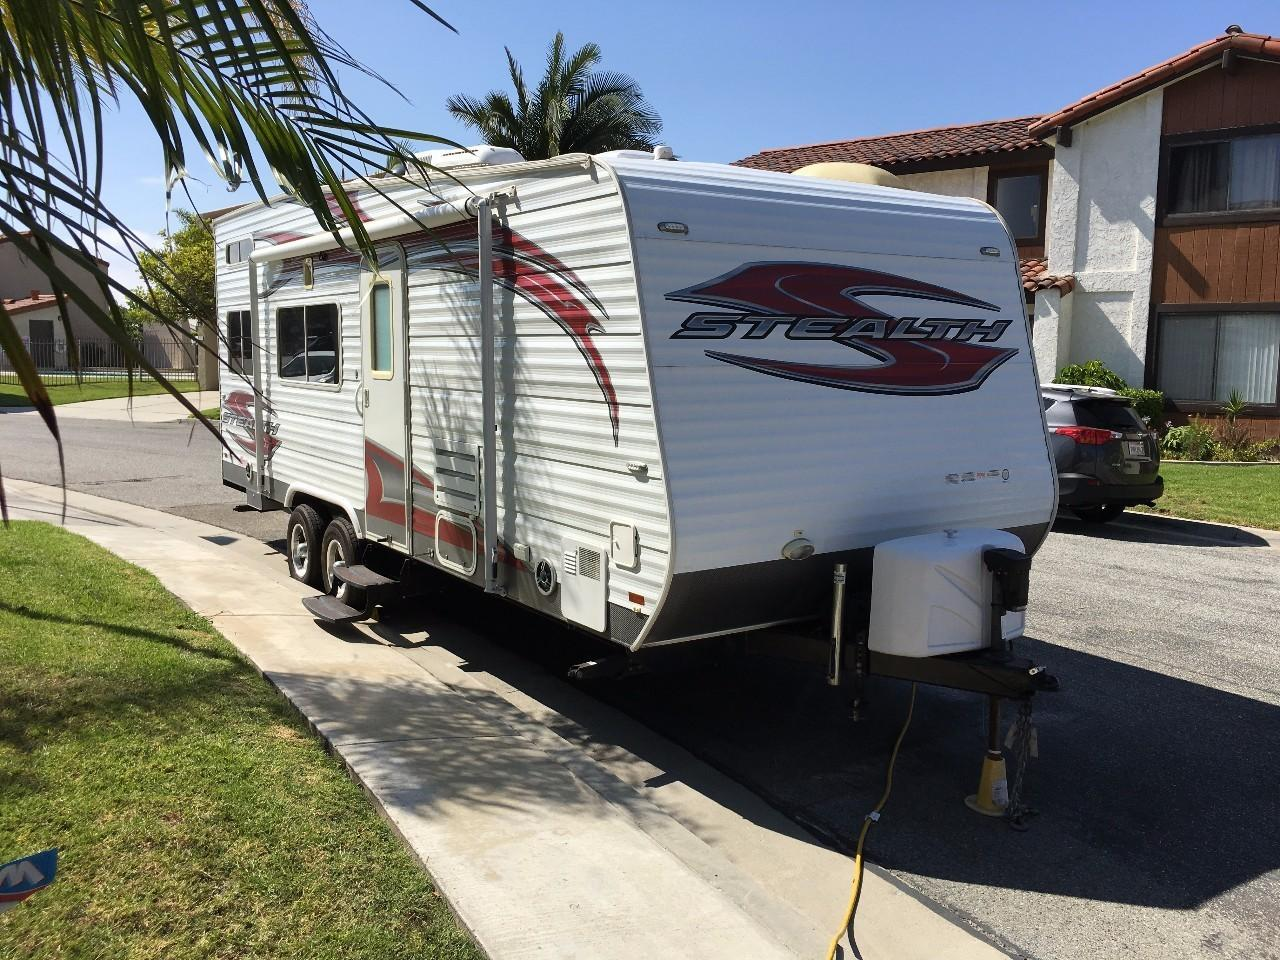 2012 Forest River STEALTH 2312 Toy Hauler $19950 | RV, RVs ...